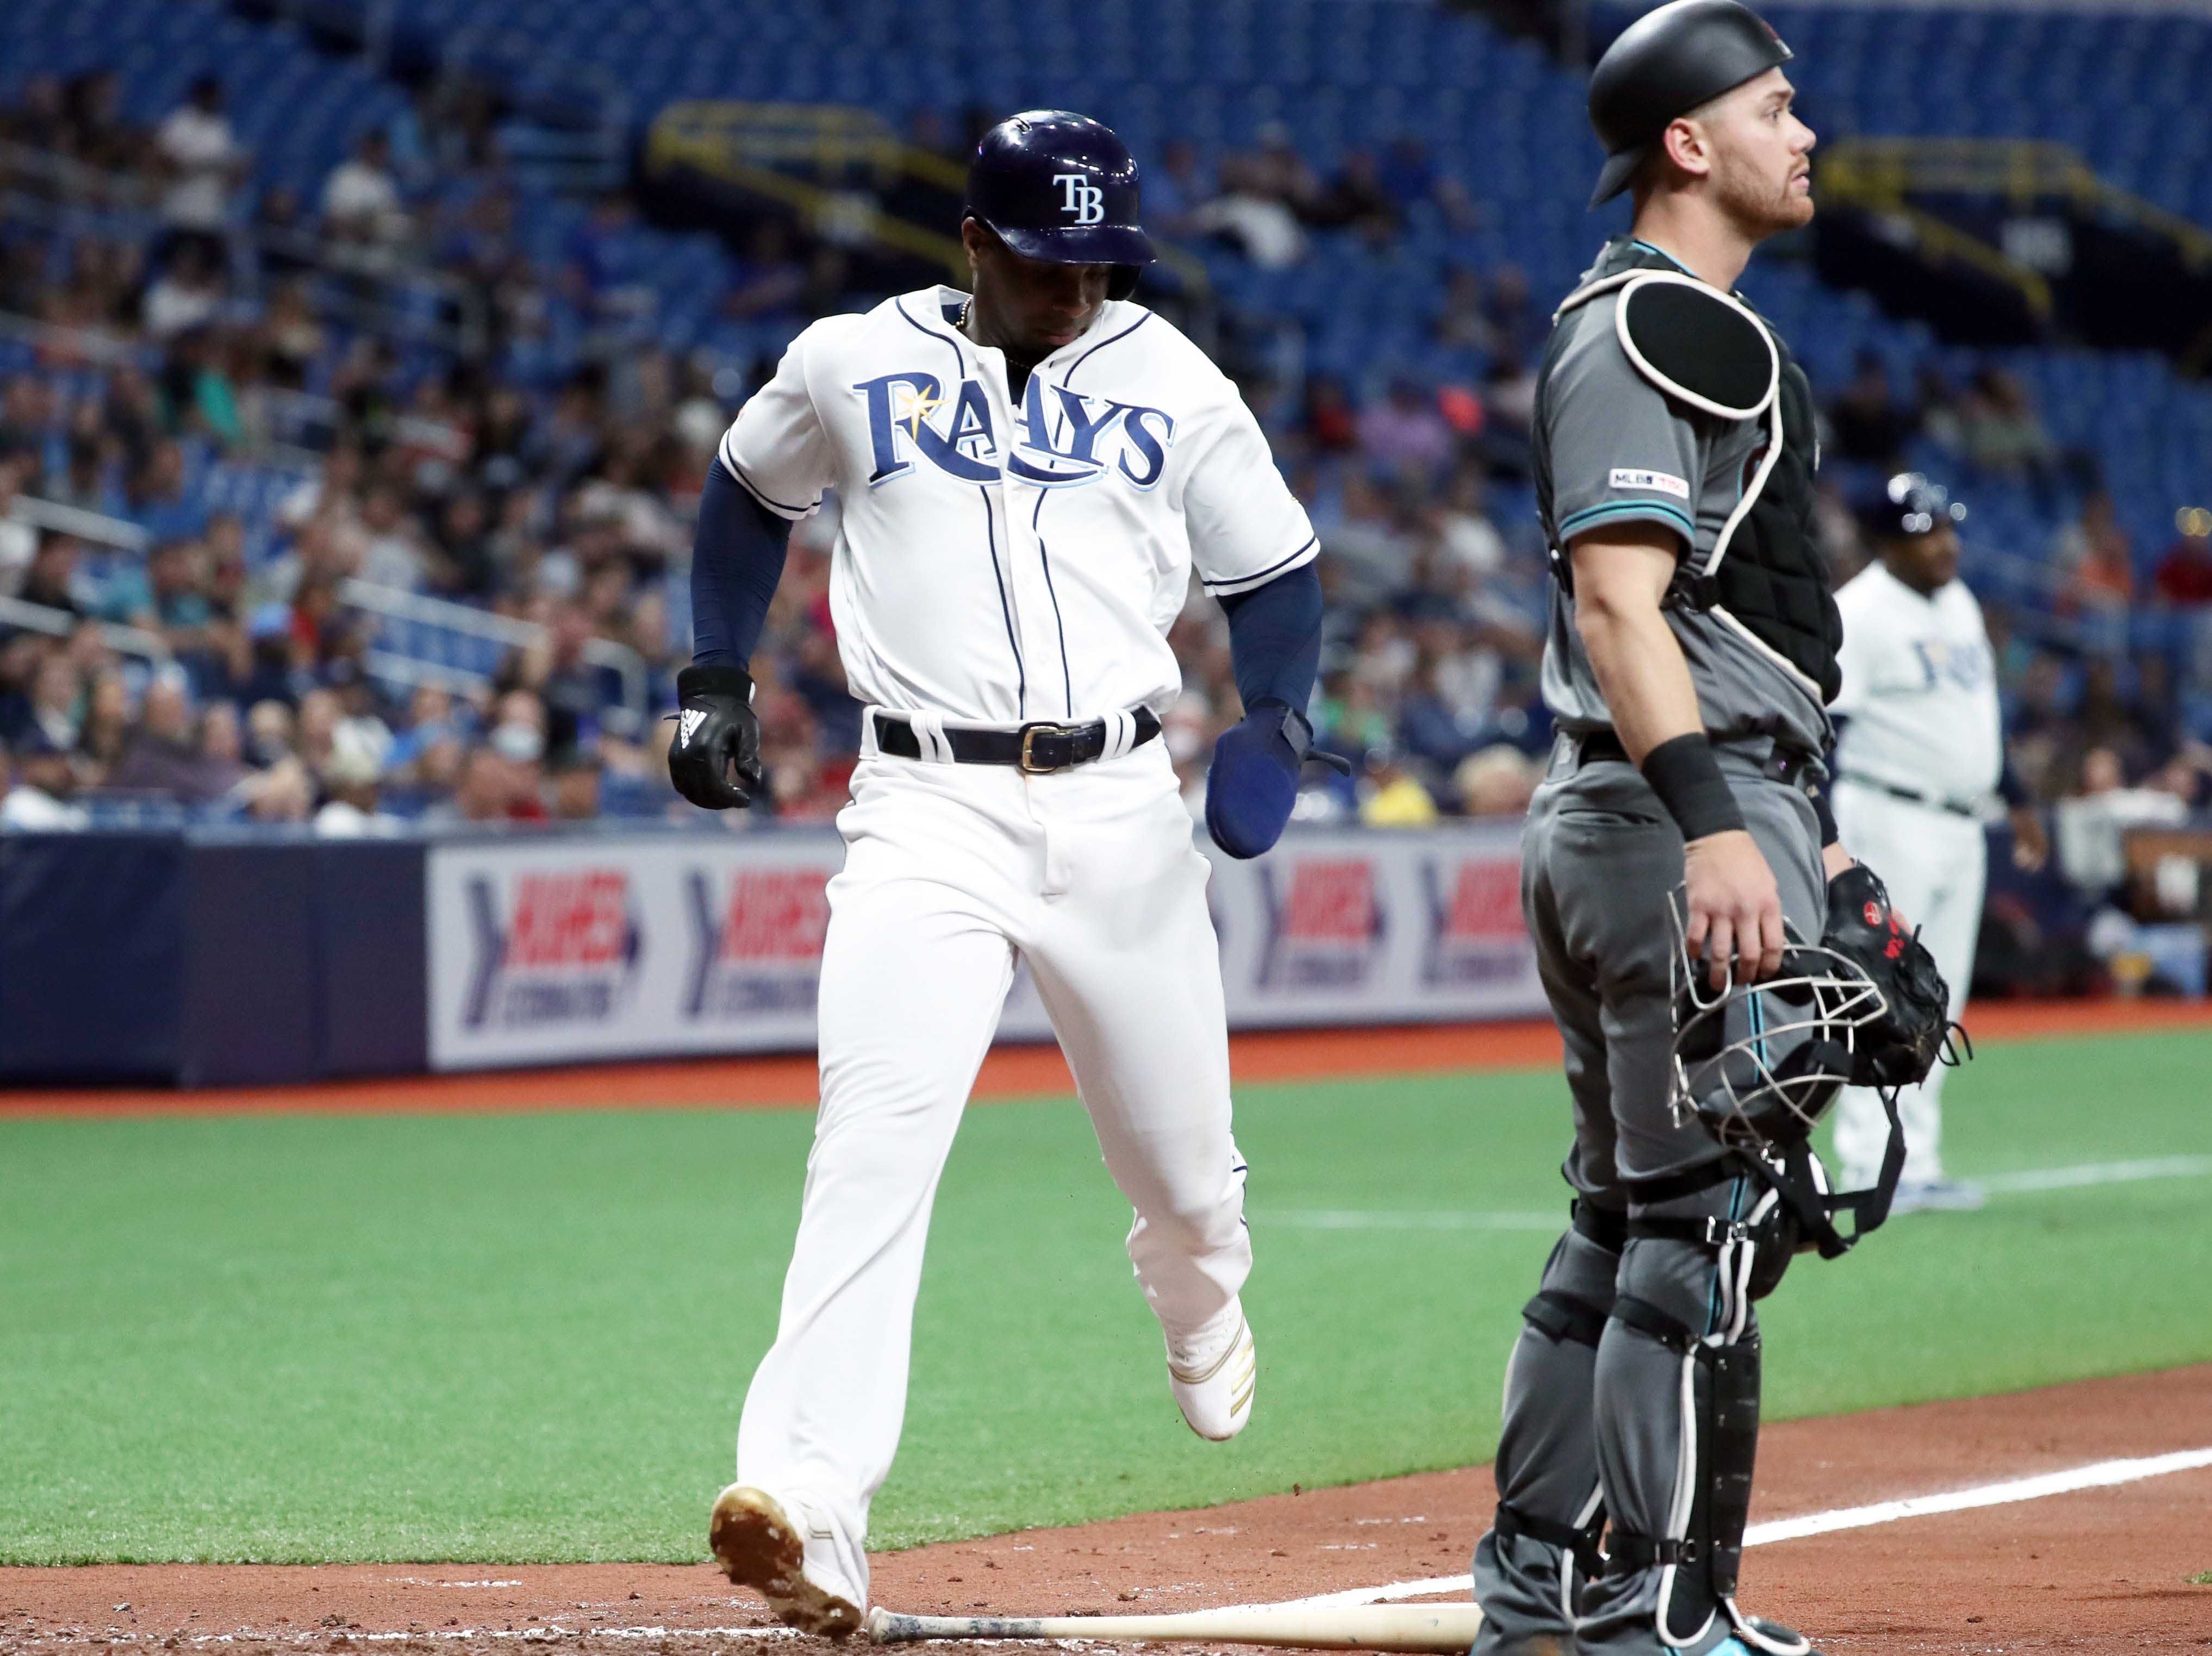 May 7, 2019; St. Petersburg, FL, USA; Tampa Bay Rays third baseman Yandy Diaz (2) scores a run as Arizona Diamondbacks catcher Carson Kelly (18) looks on during the fourth inning at Tropicana Field. Mandatory Credit: Kim Klement-USA TODAY Sports